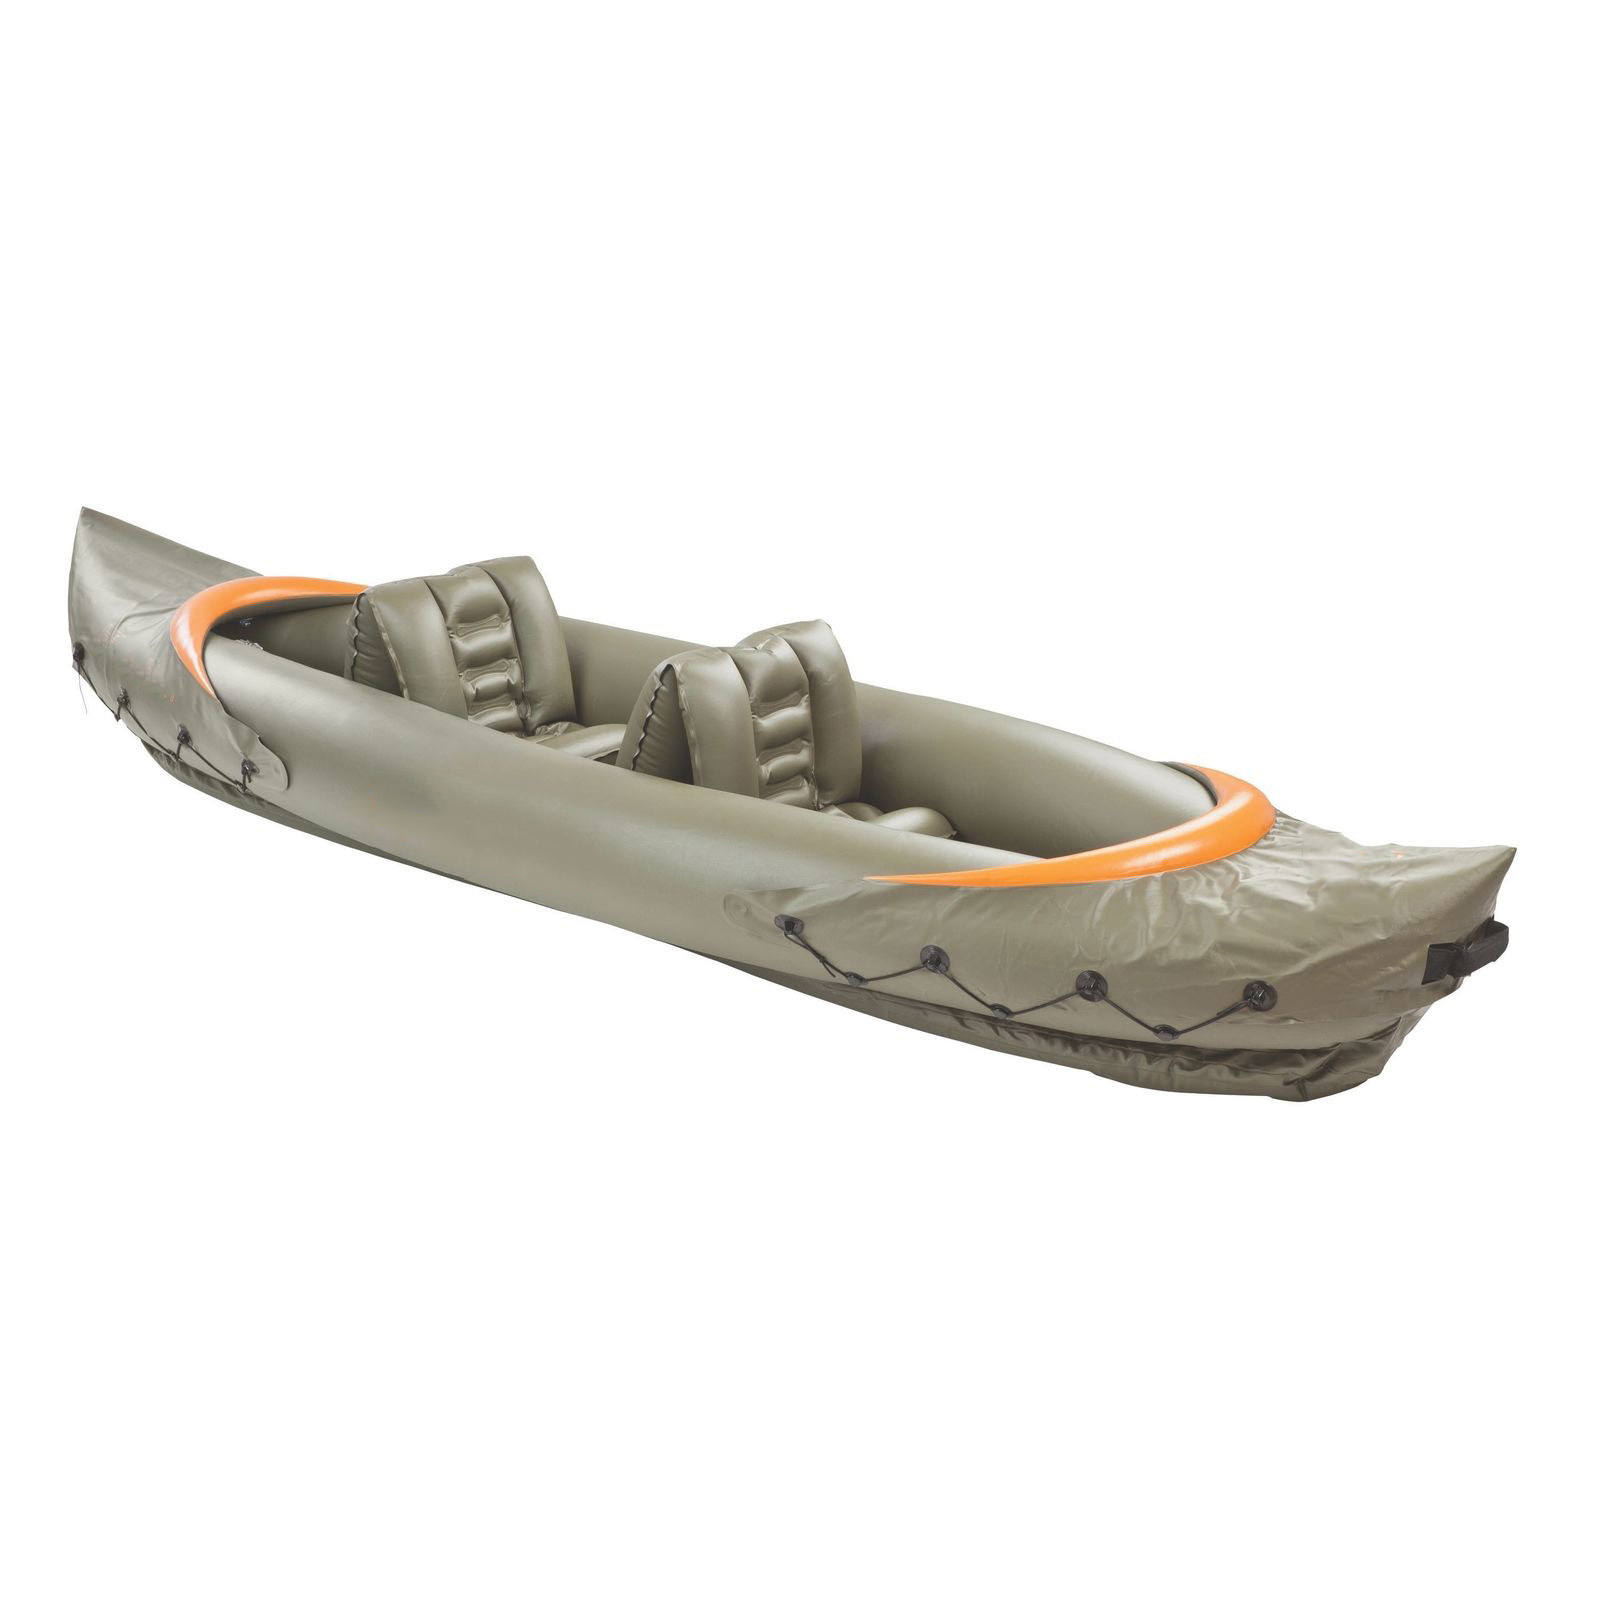 PVC Hull Material And 2.95mL Length Inflatable Kayaks